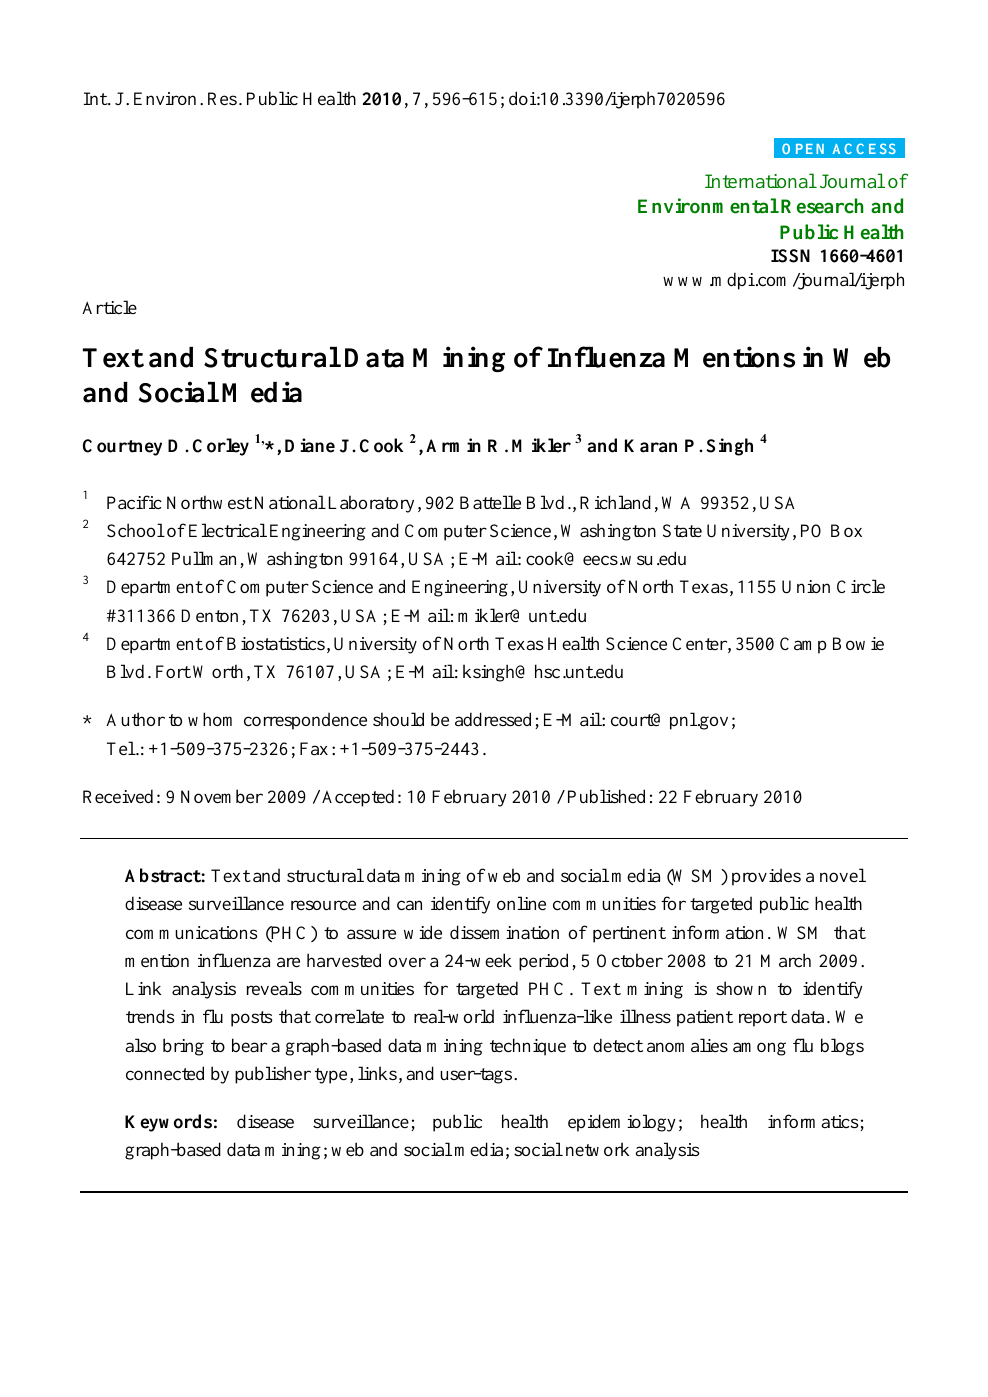 Text and Structural Data Mining of Influenza Mentions in Web